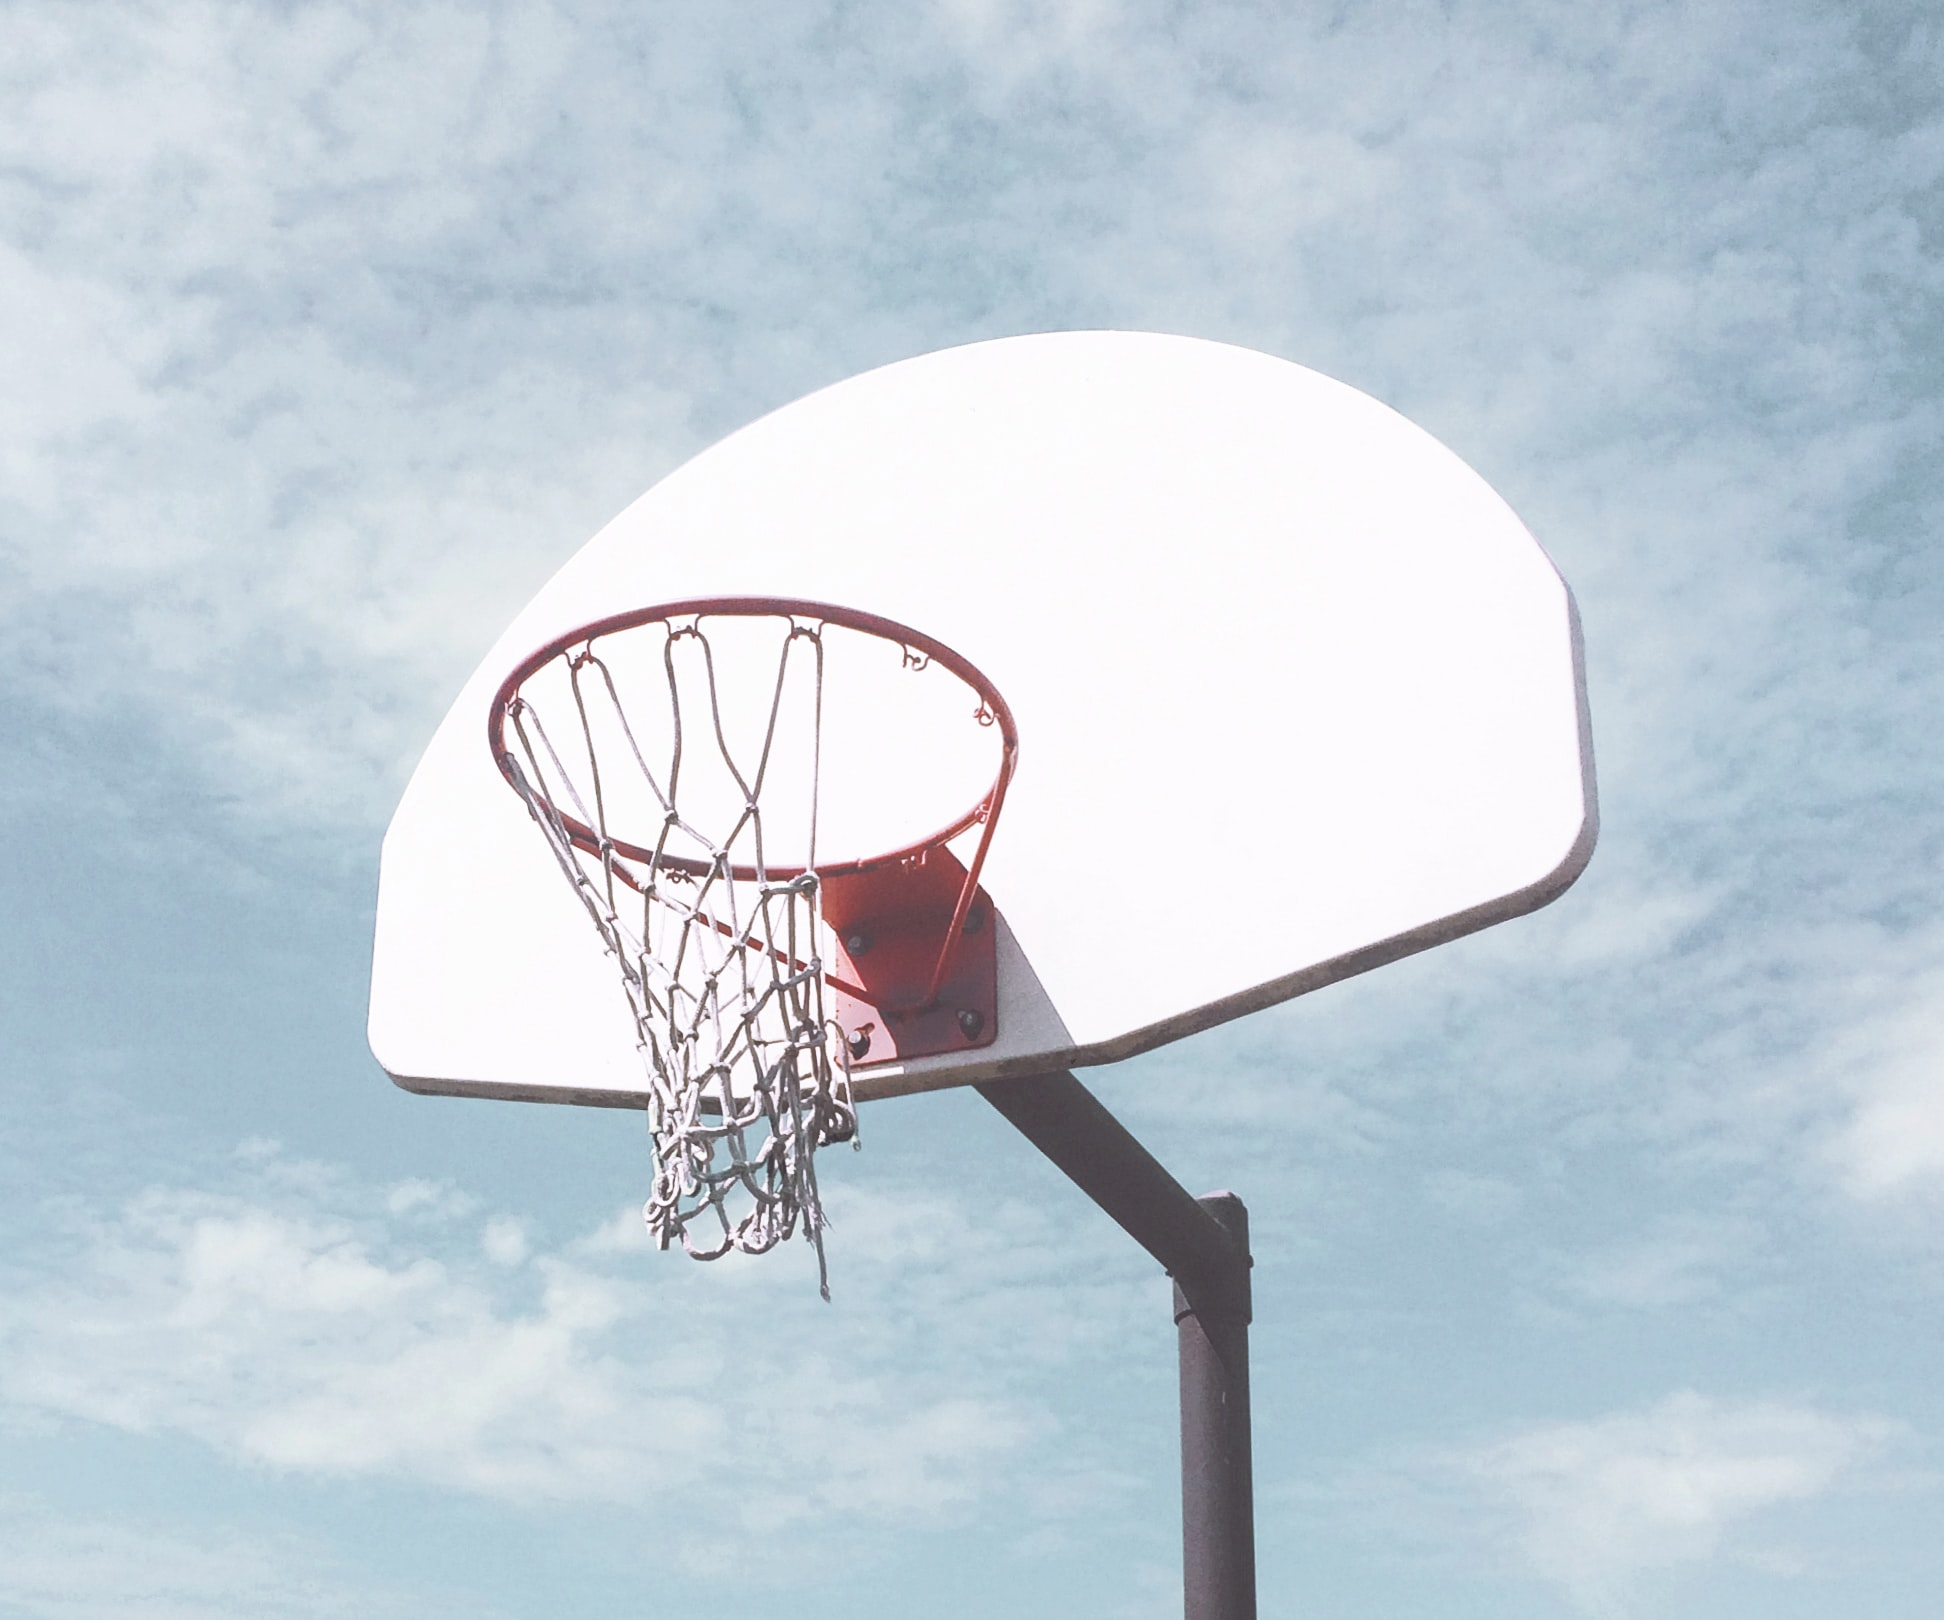 low-angle photography of basketball ring under cloudy sky